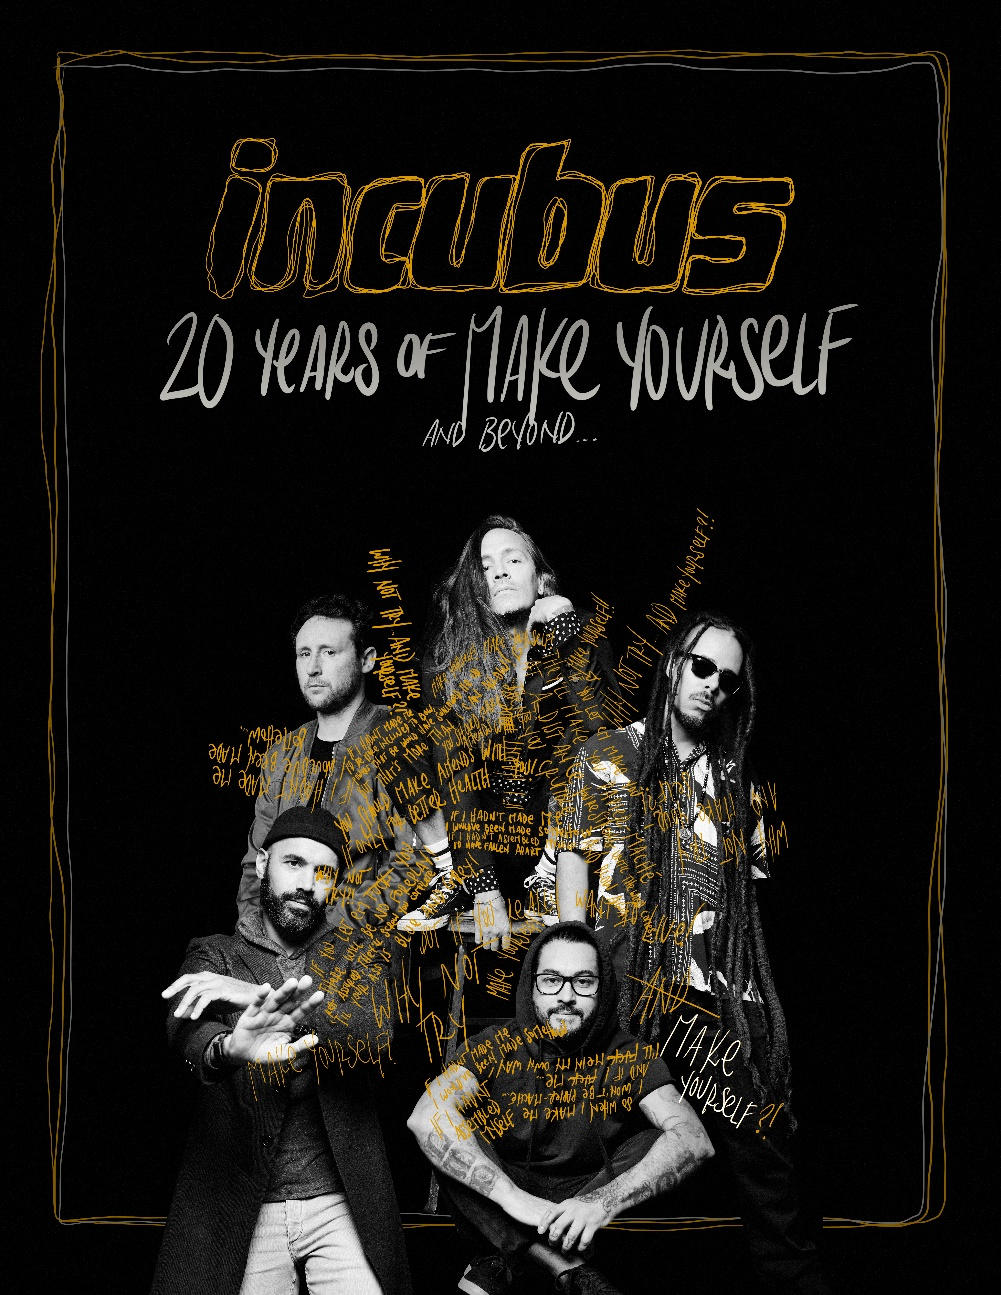 Incubus announces 20th anniversary of 'Make Yourself' tour